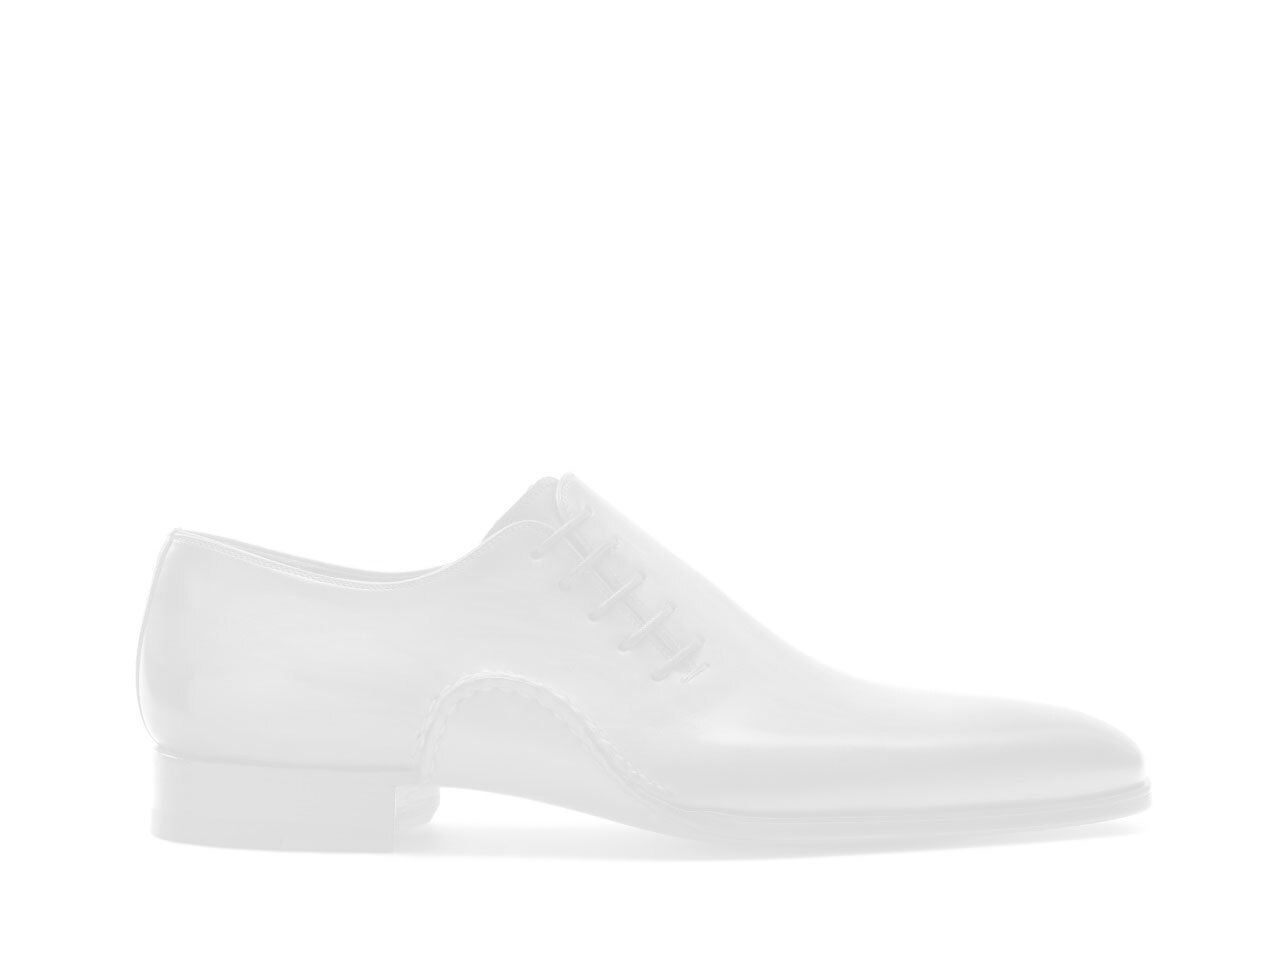 Side view of the Magnanni Noia Cuero Men's Sneakers